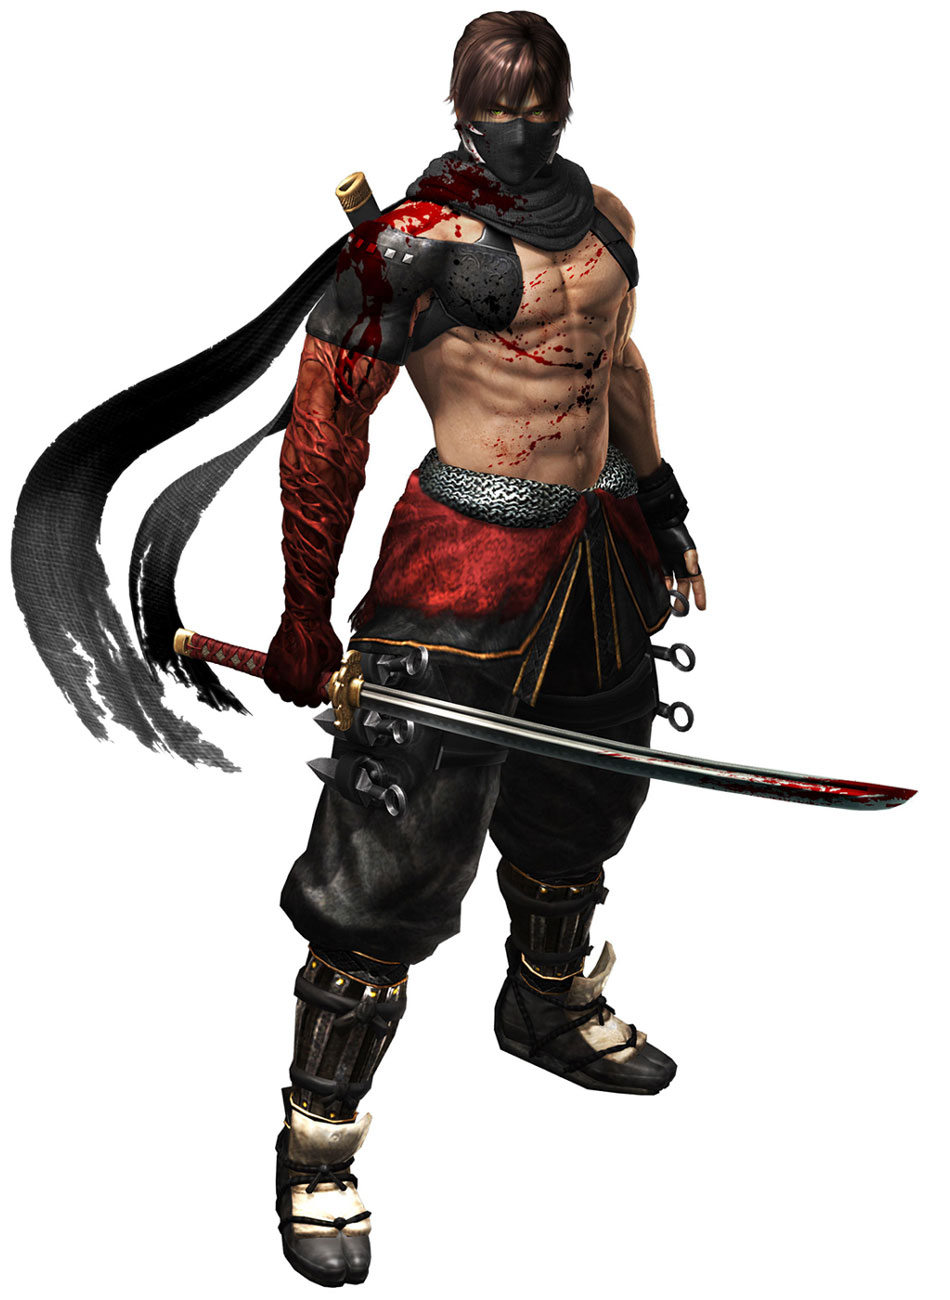 ryu hayabusa costumes wallpaper - photo #9